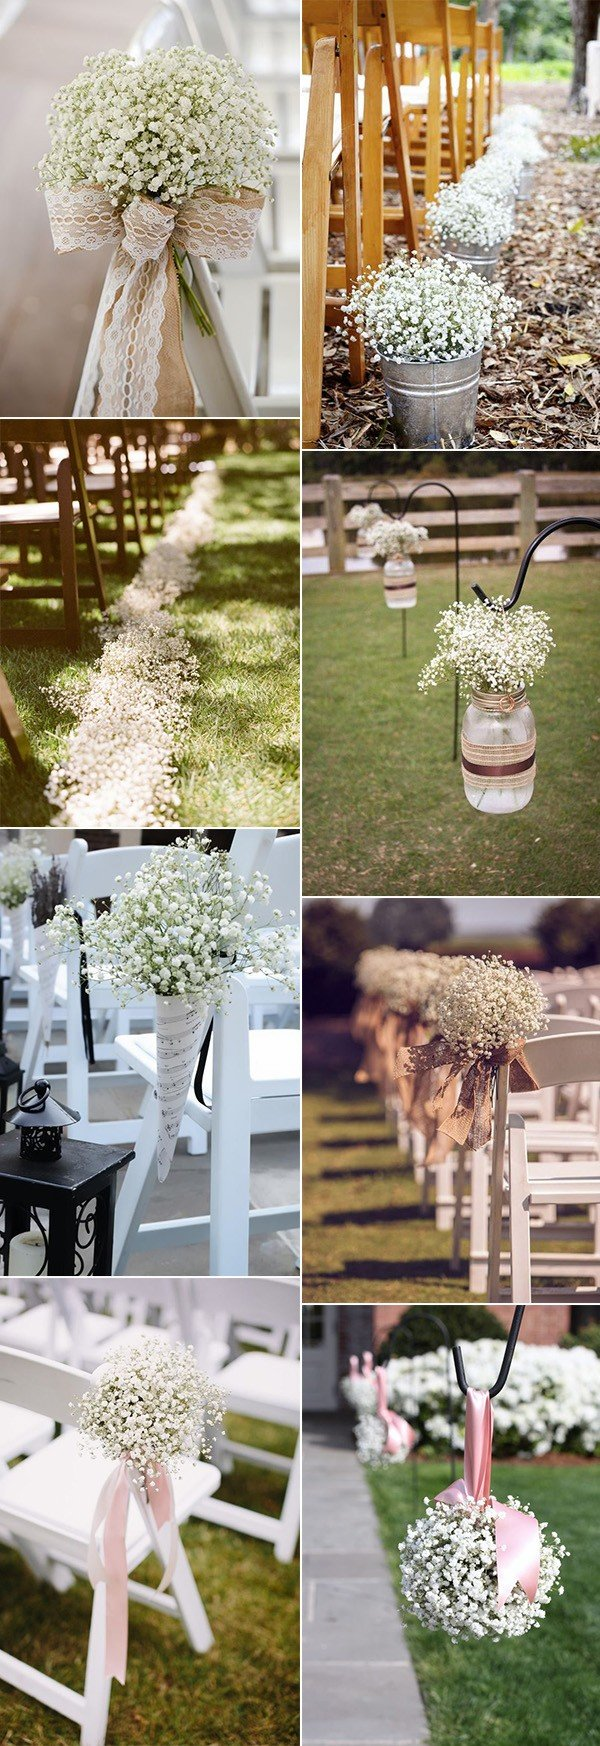 chic wedding aisle decoration ideas with baby's breath